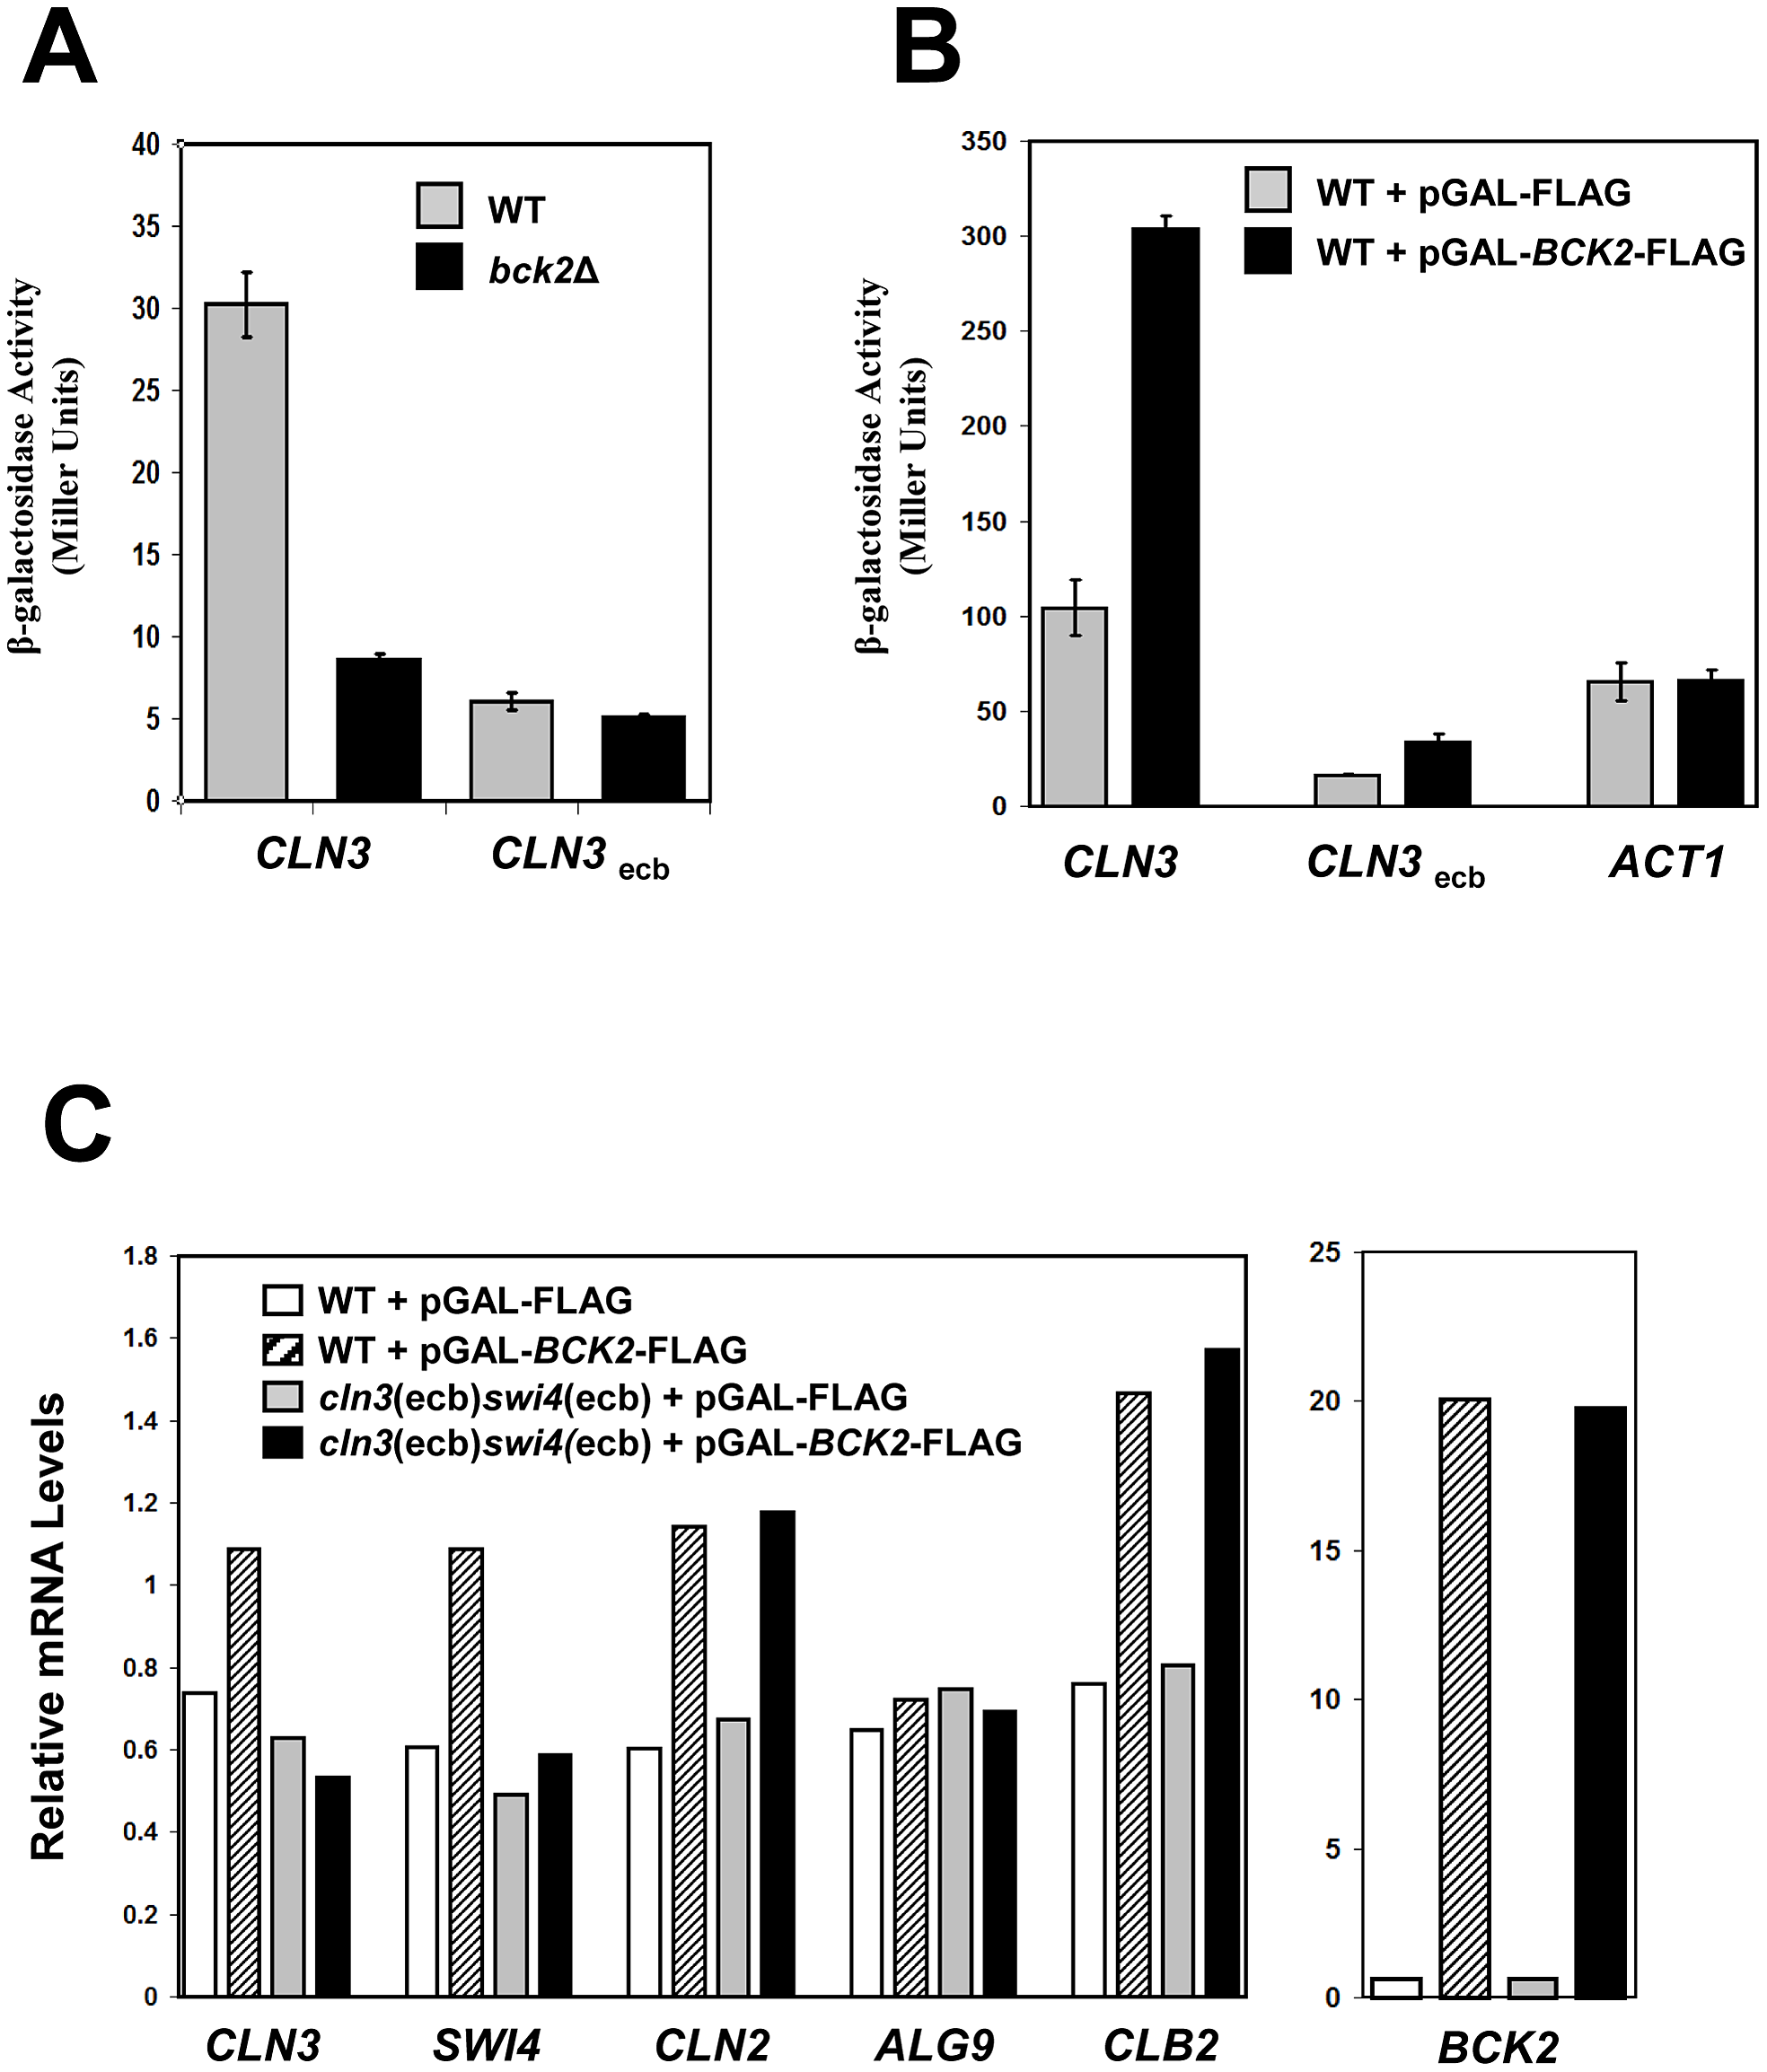 Bck2 requires intact ECB elements for transcriptional activation.